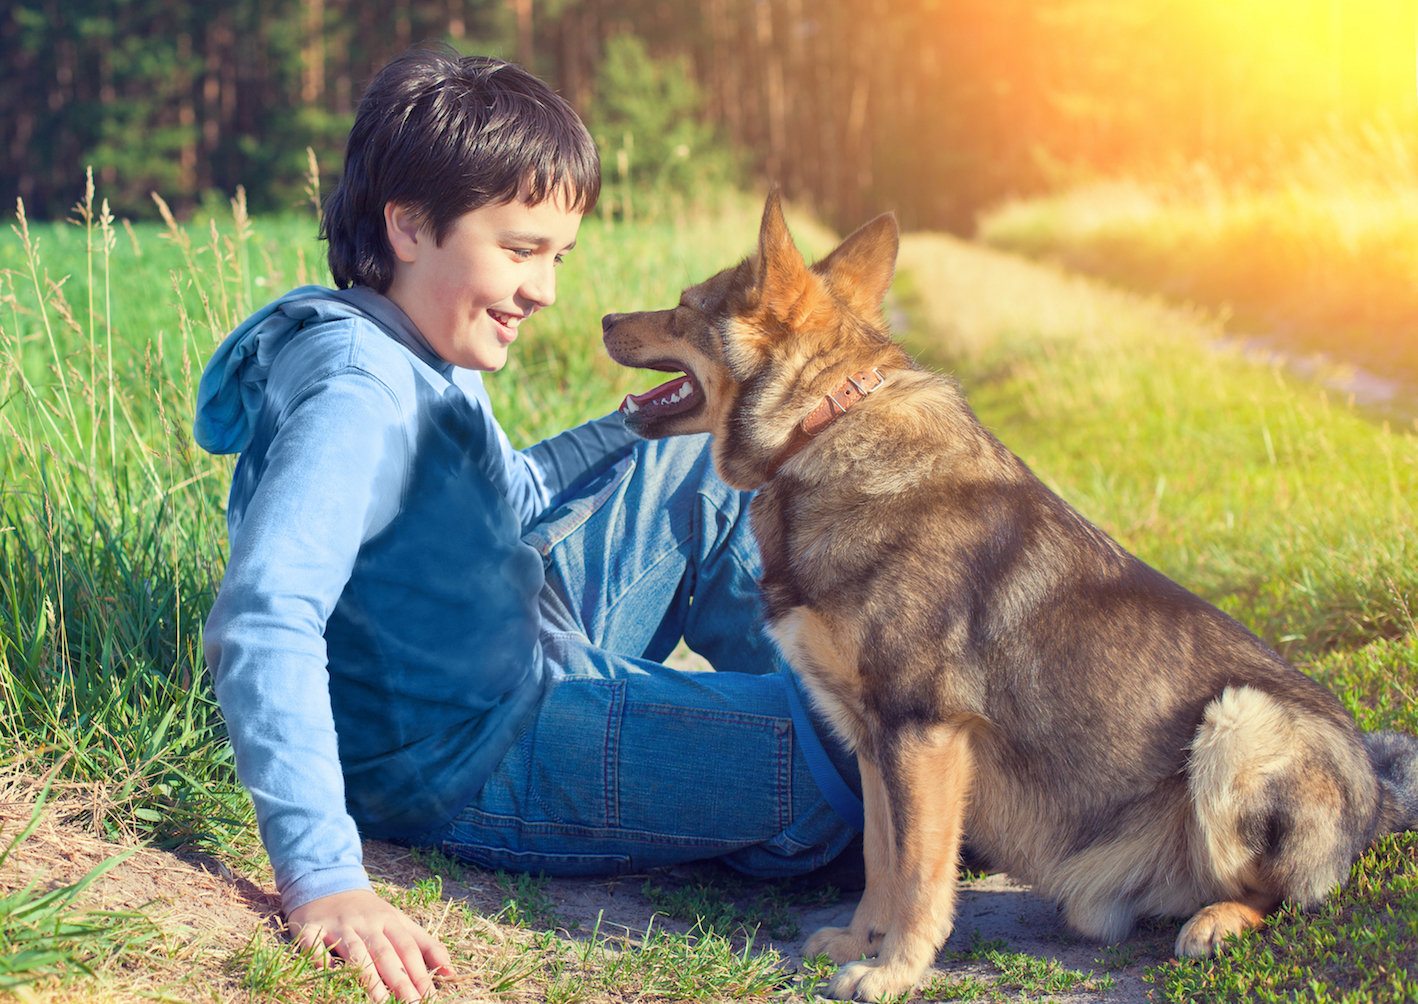 """Puppies love when people direct a type of """"baby talk"""" at them, while older dogs appear to be indifferent to that communication."""